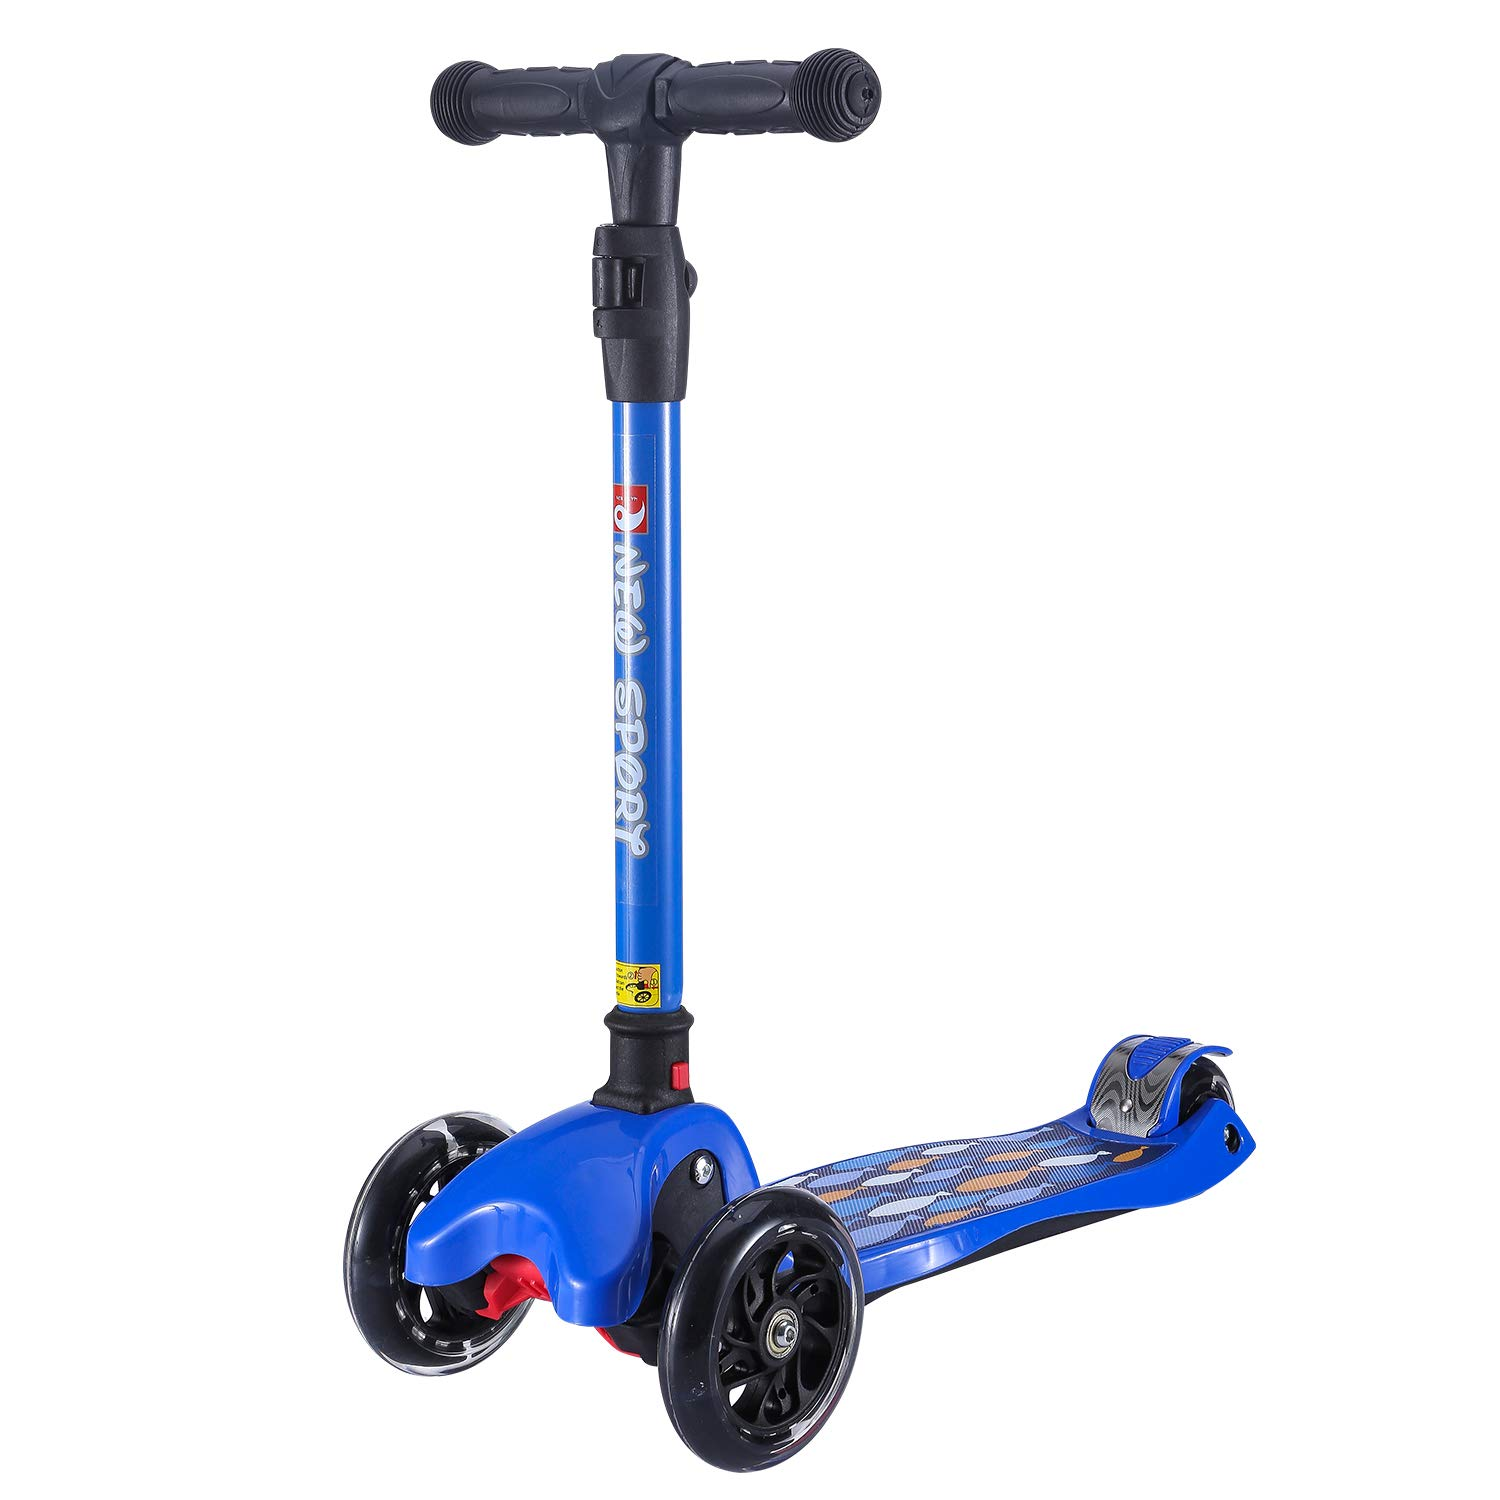 New Olym Kids Scooters 3 Wheel for Girls&Big Boys Toddlers, 4 Adjustable Height Flashing Wheels Scooter with Extra Wide Deck Safety Brake|Foldable System Ride Scooter for Children Ages 3-12 by New Olym